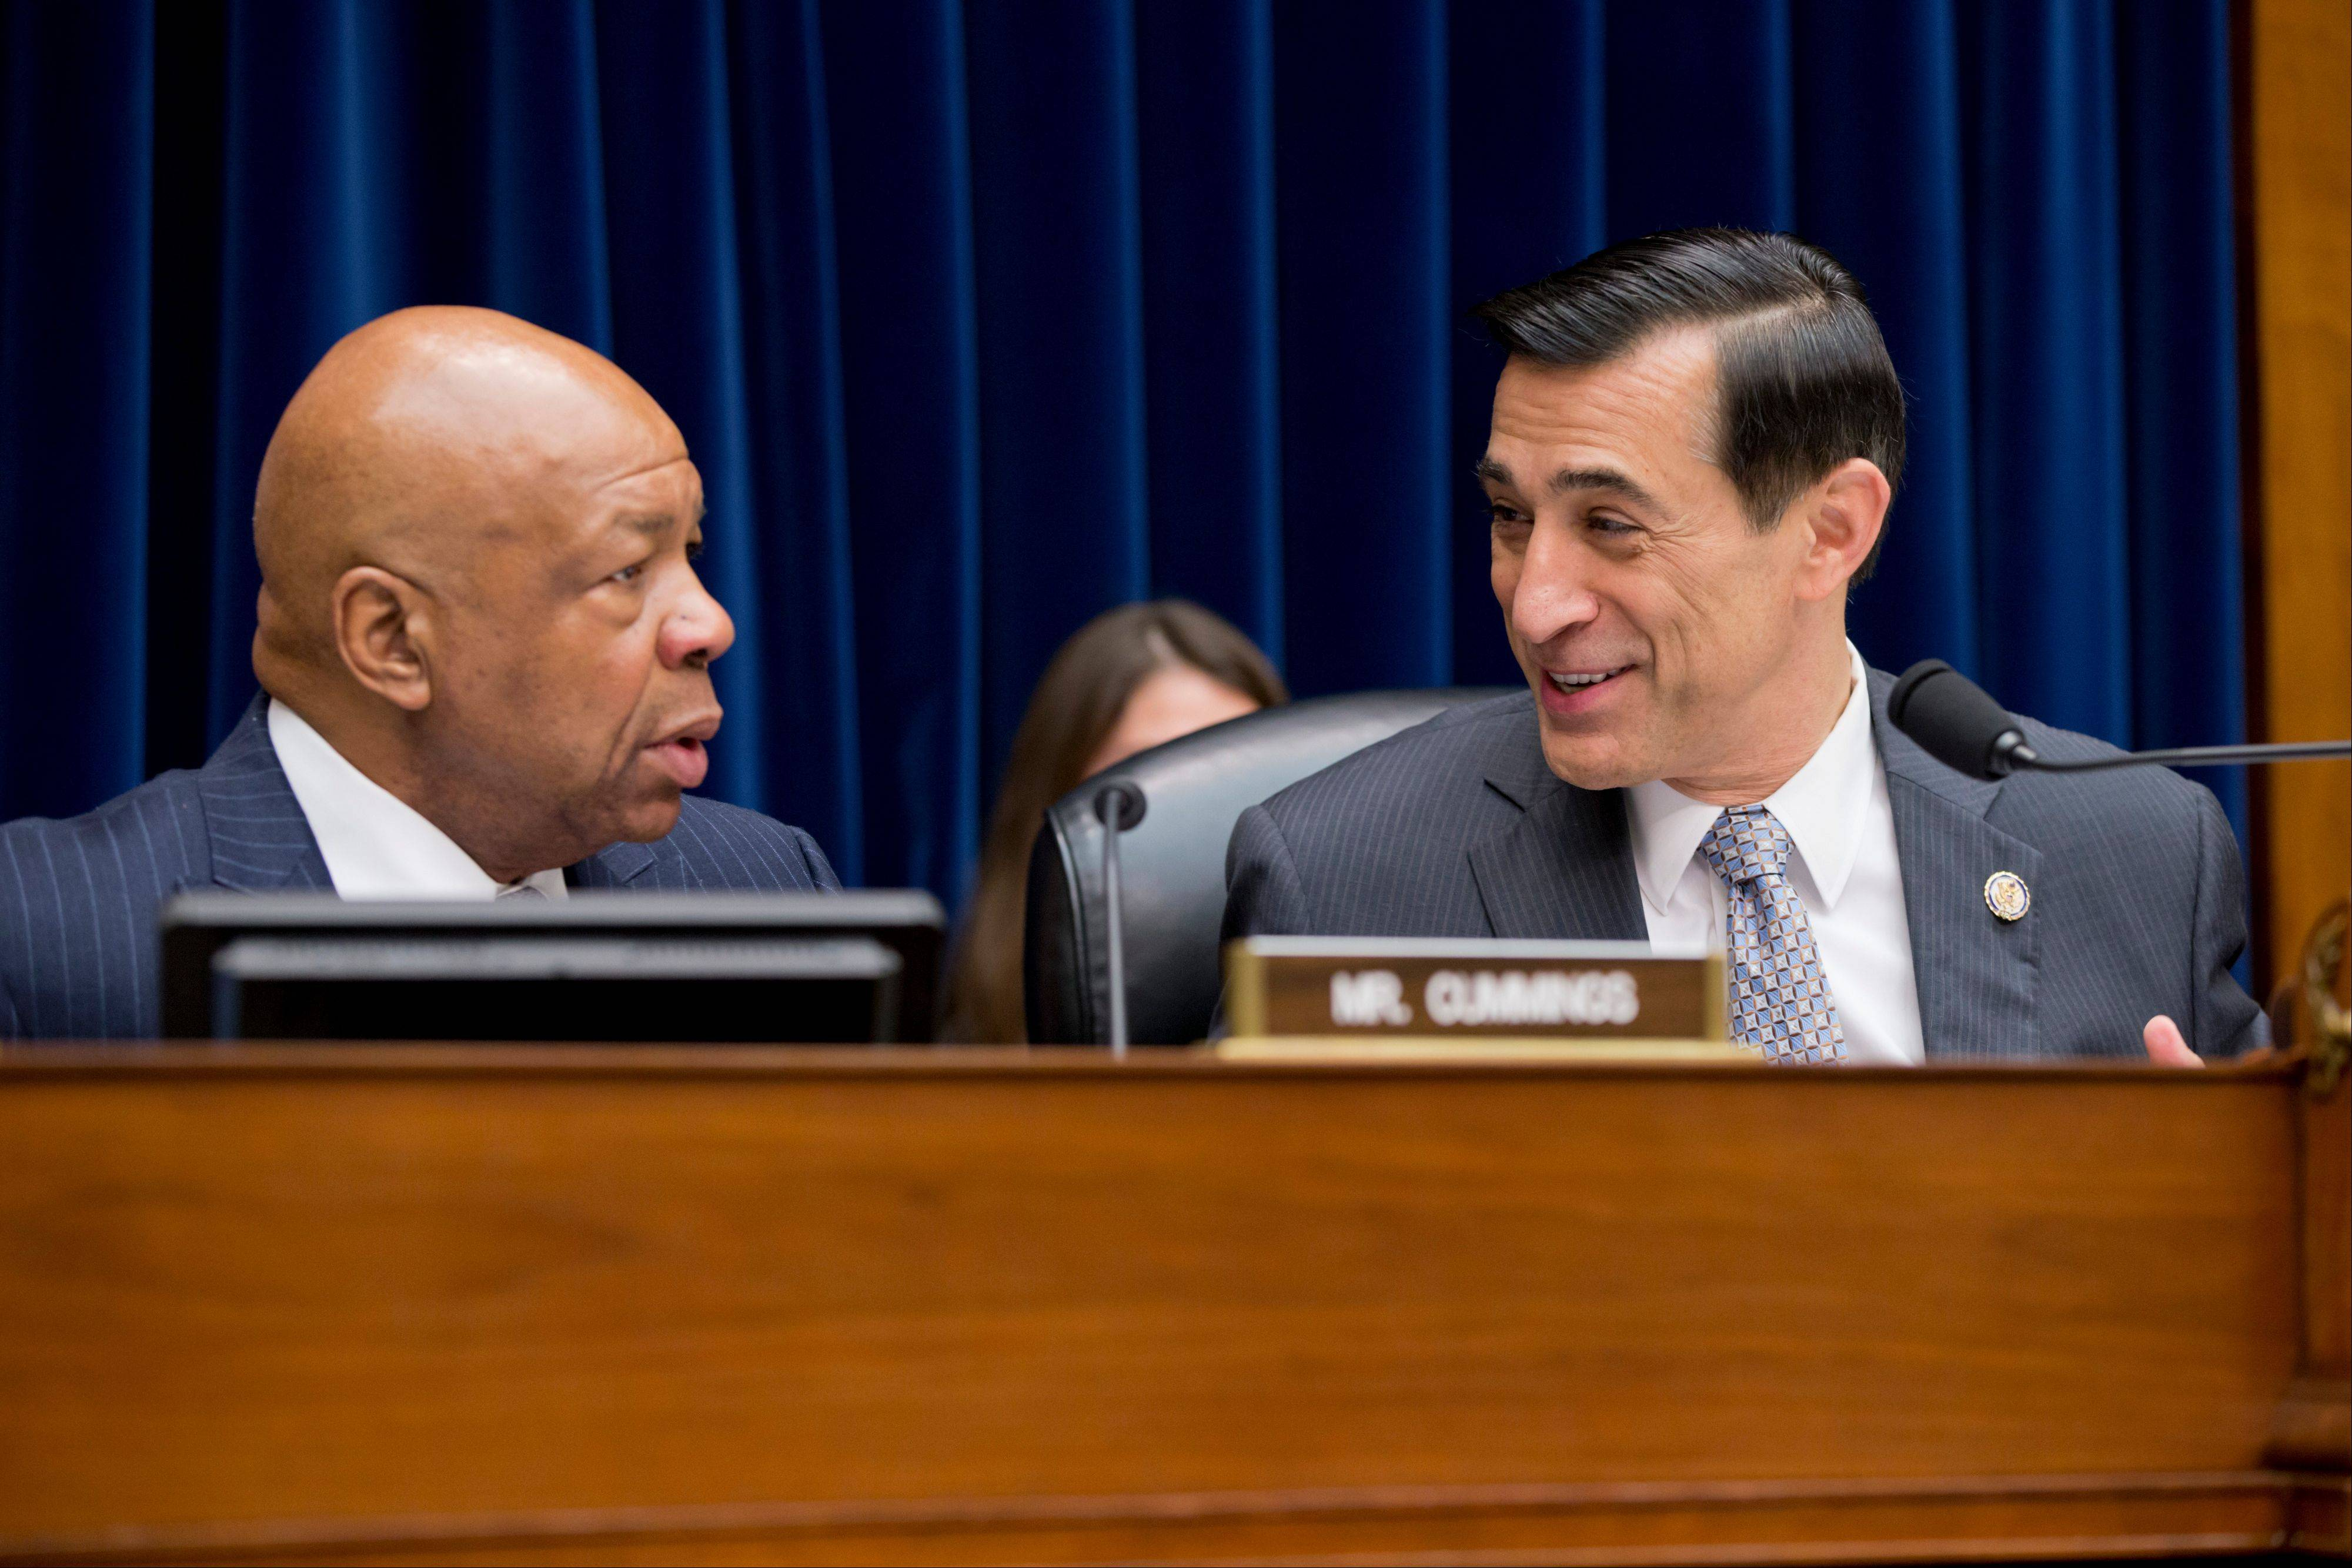 House Oversight and Government Reform Committee Chairman Rep. Darrell Issa, R-Calif., right, confers with the committee's ranking Democrat, Rep. Elijah Cummings, D-Md., on Capitol Hill in Washington, before the start of the committee's hearing on the implementation of the Affordable Care Actís HealthCare.gov website.